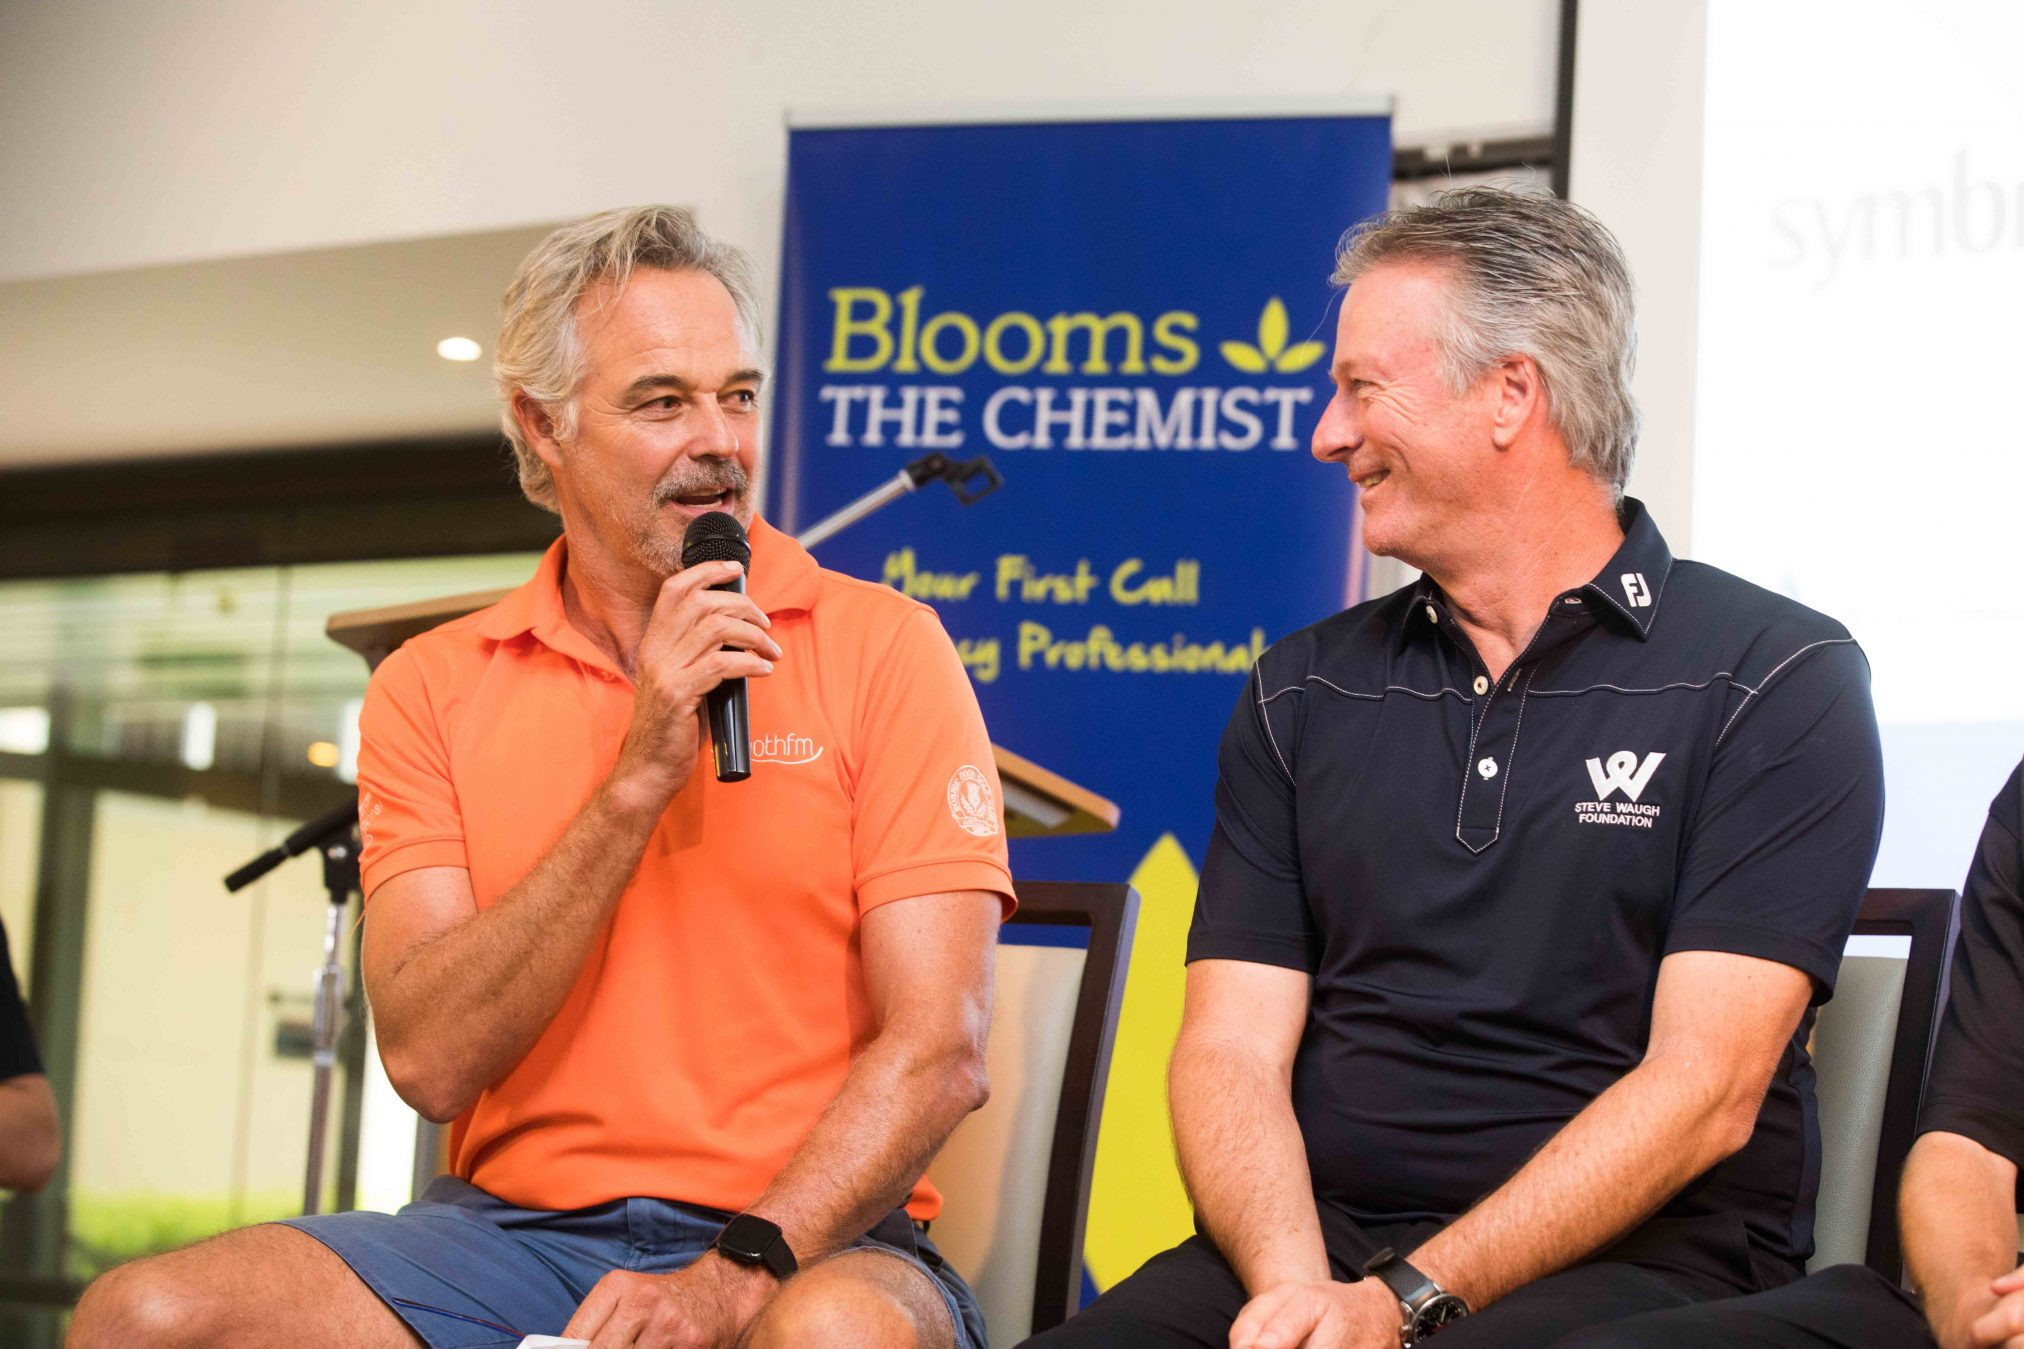 Cameron Daddo and Steve Waugh talk golf at the recent Blooms charity event.